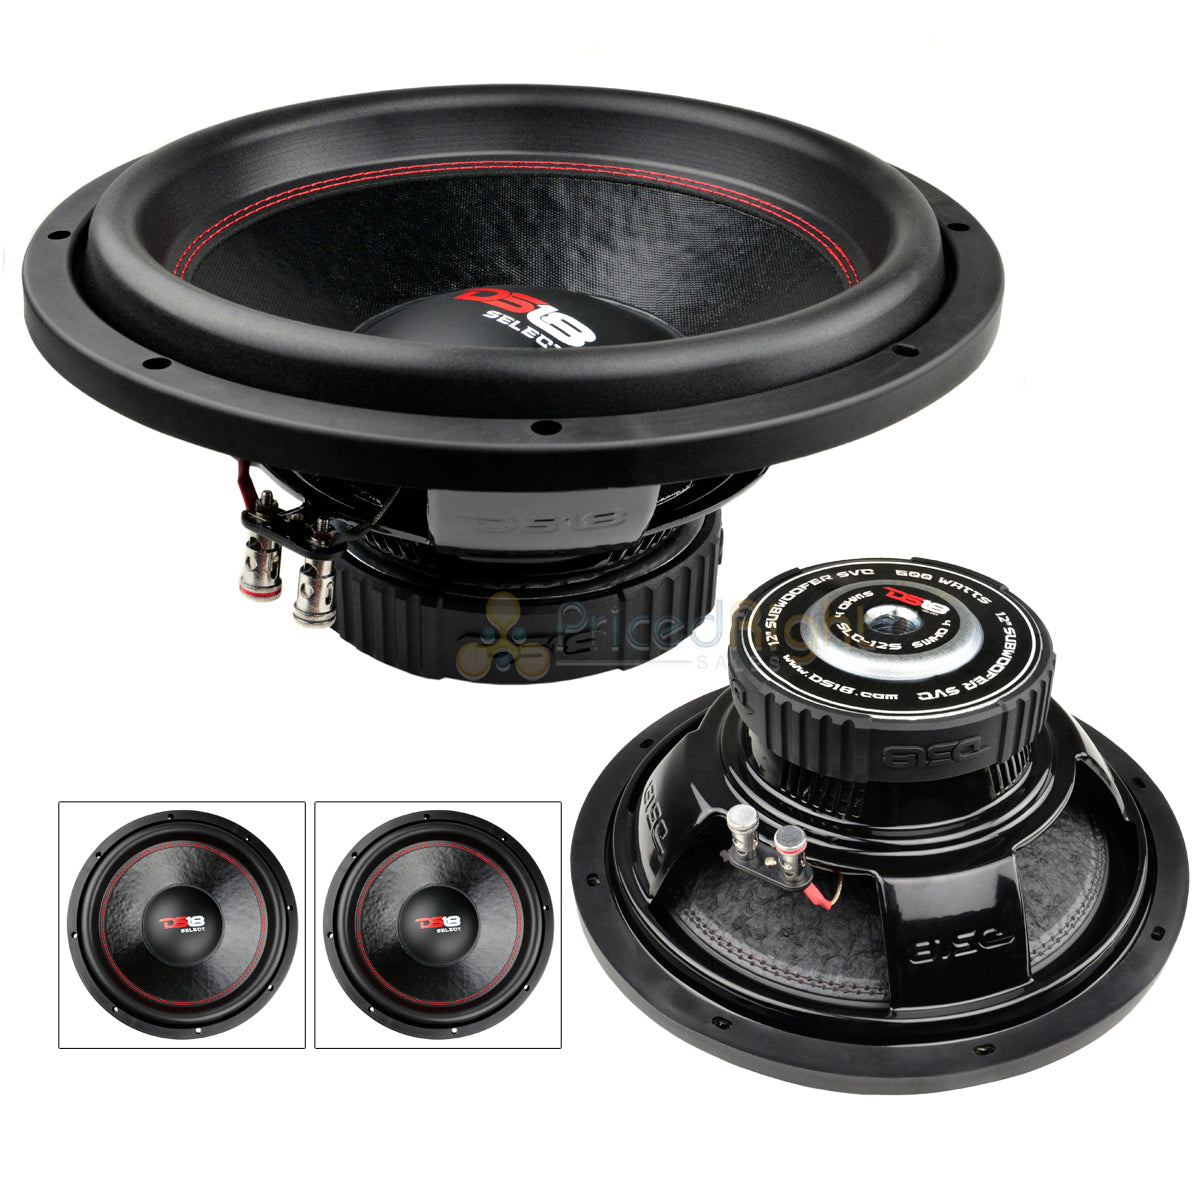 "2 DS18 SLC-12S 12"" Inch Subwoofers 500 Watts Max Power 4 Ohm Sub Select Series"